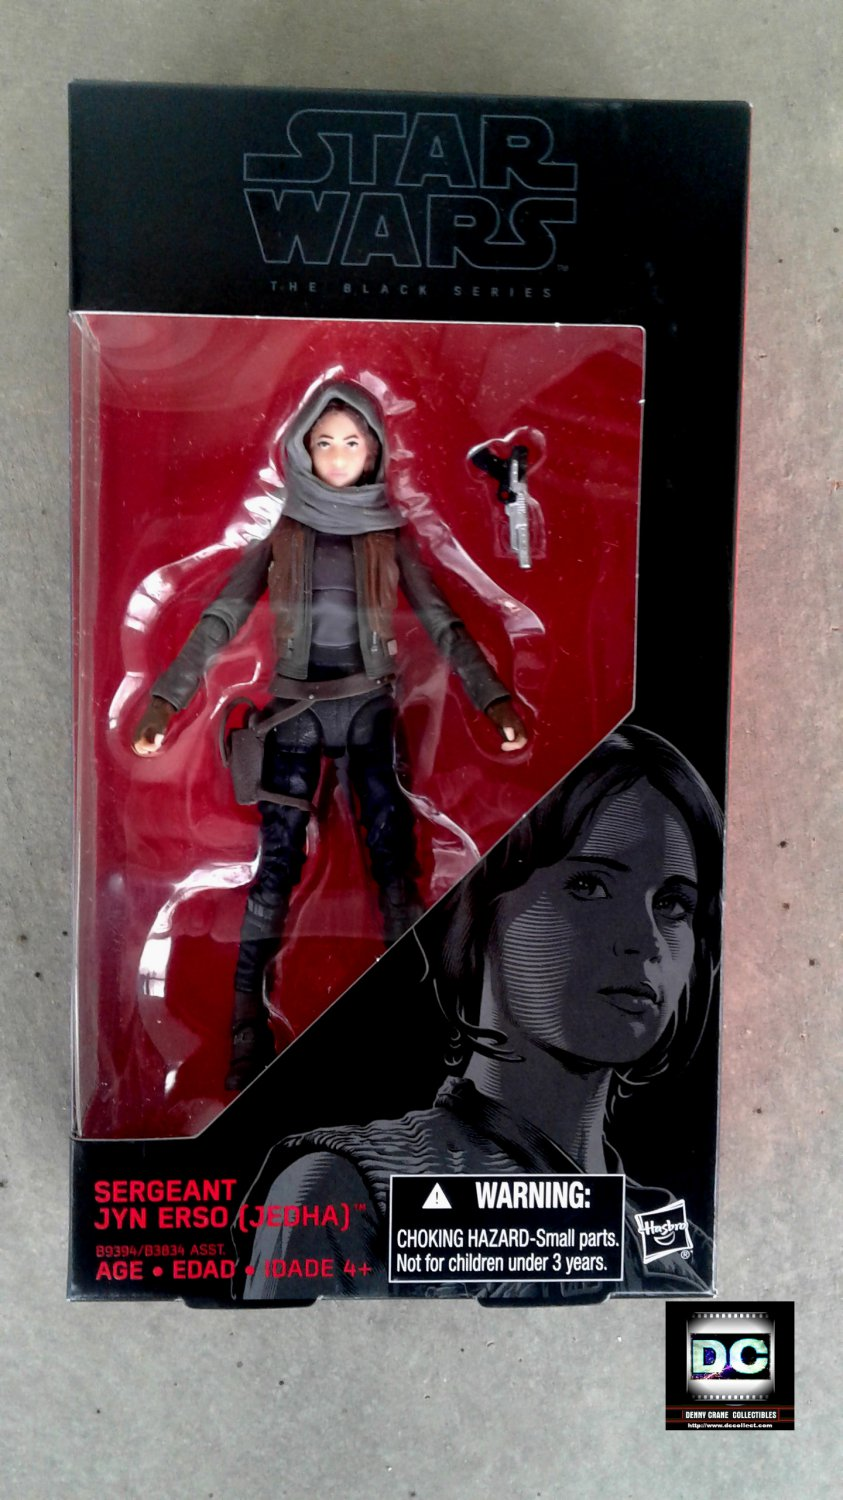 "Star Wars Black Series #22 - Sergeant Jyn Erso Rogue One 6"" Figure B9394 MISB Case Fresh"